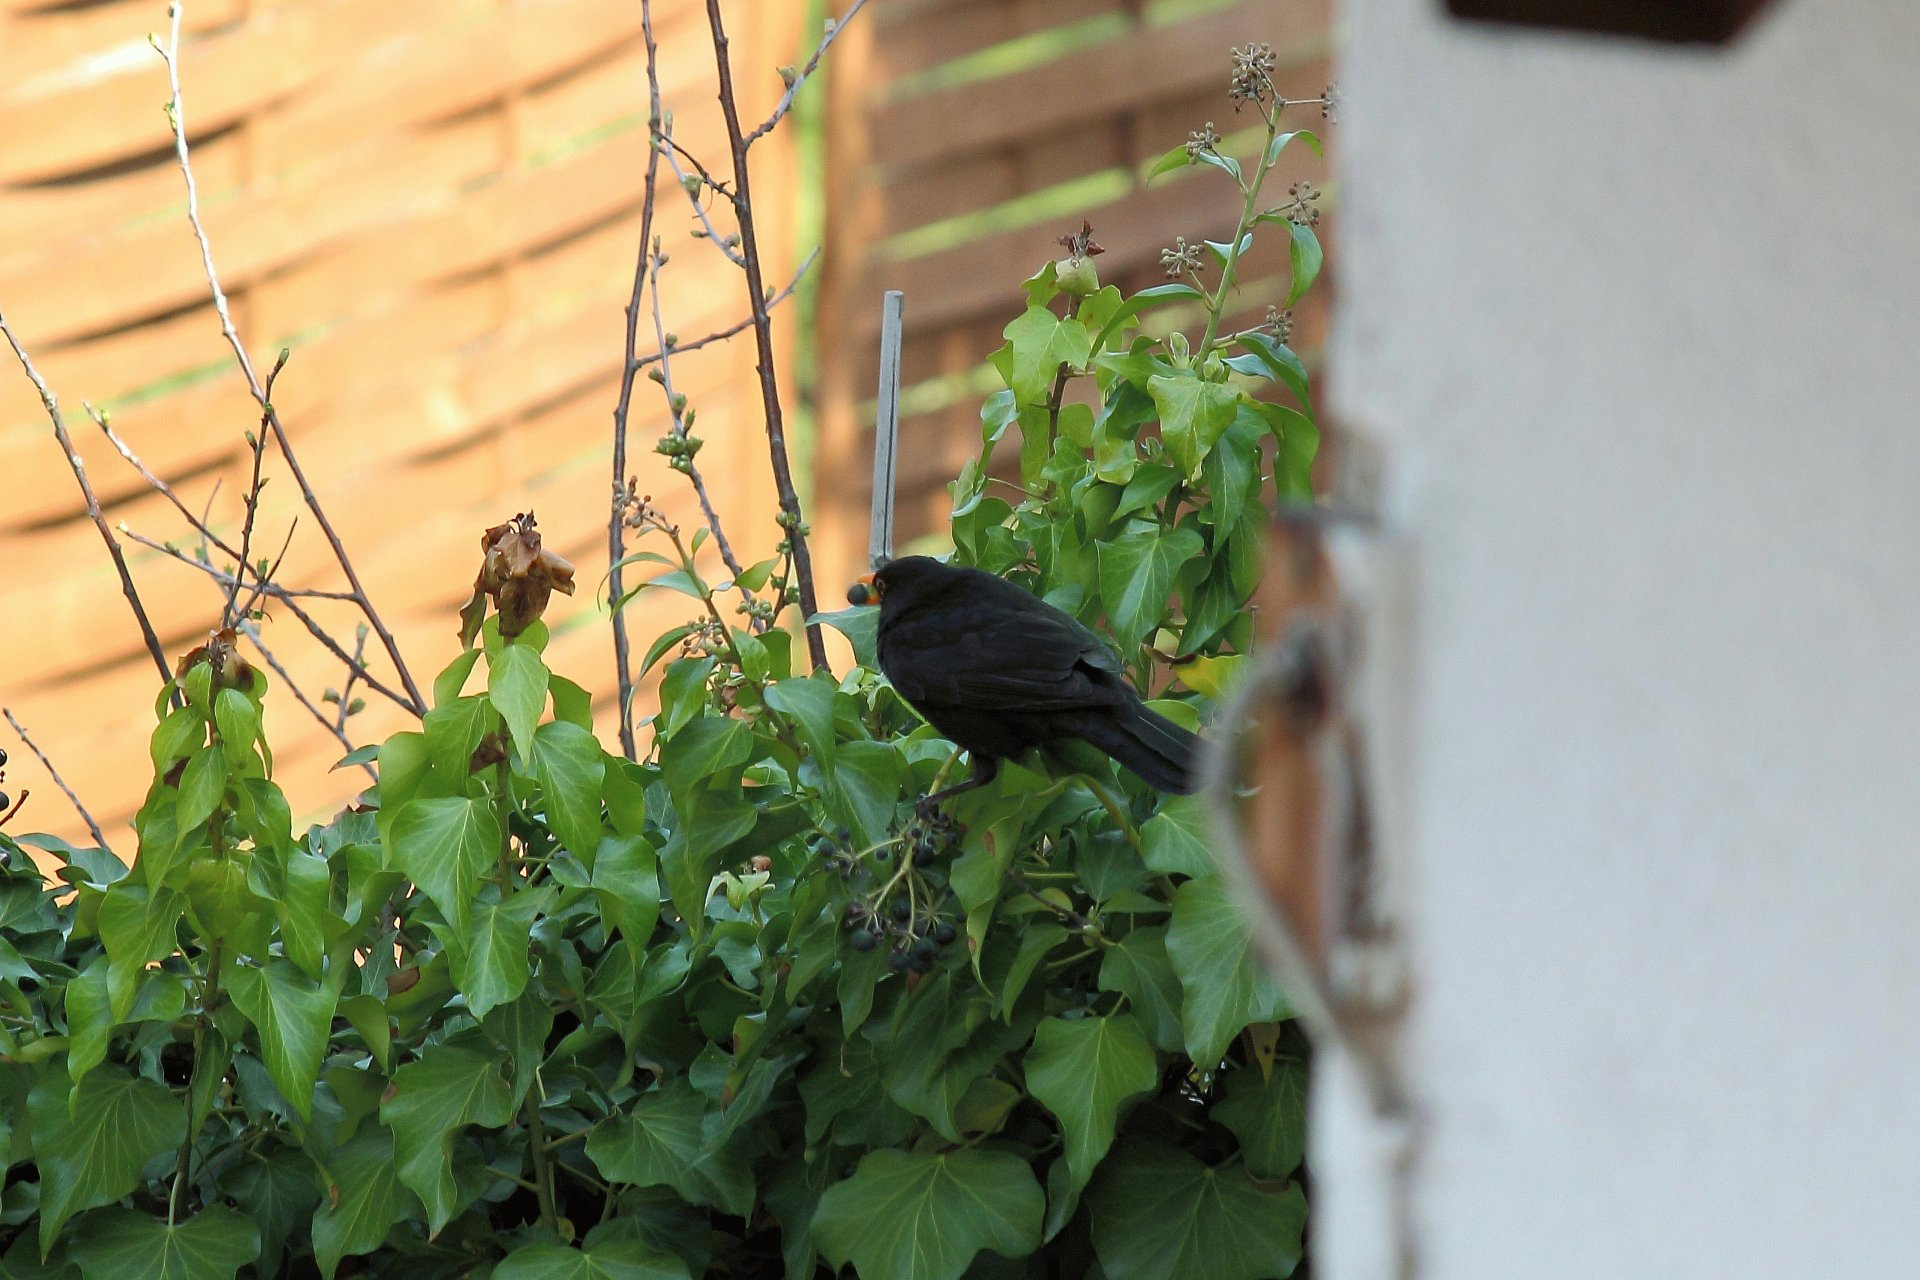 tewr3Bf amsel03042012cm7iso